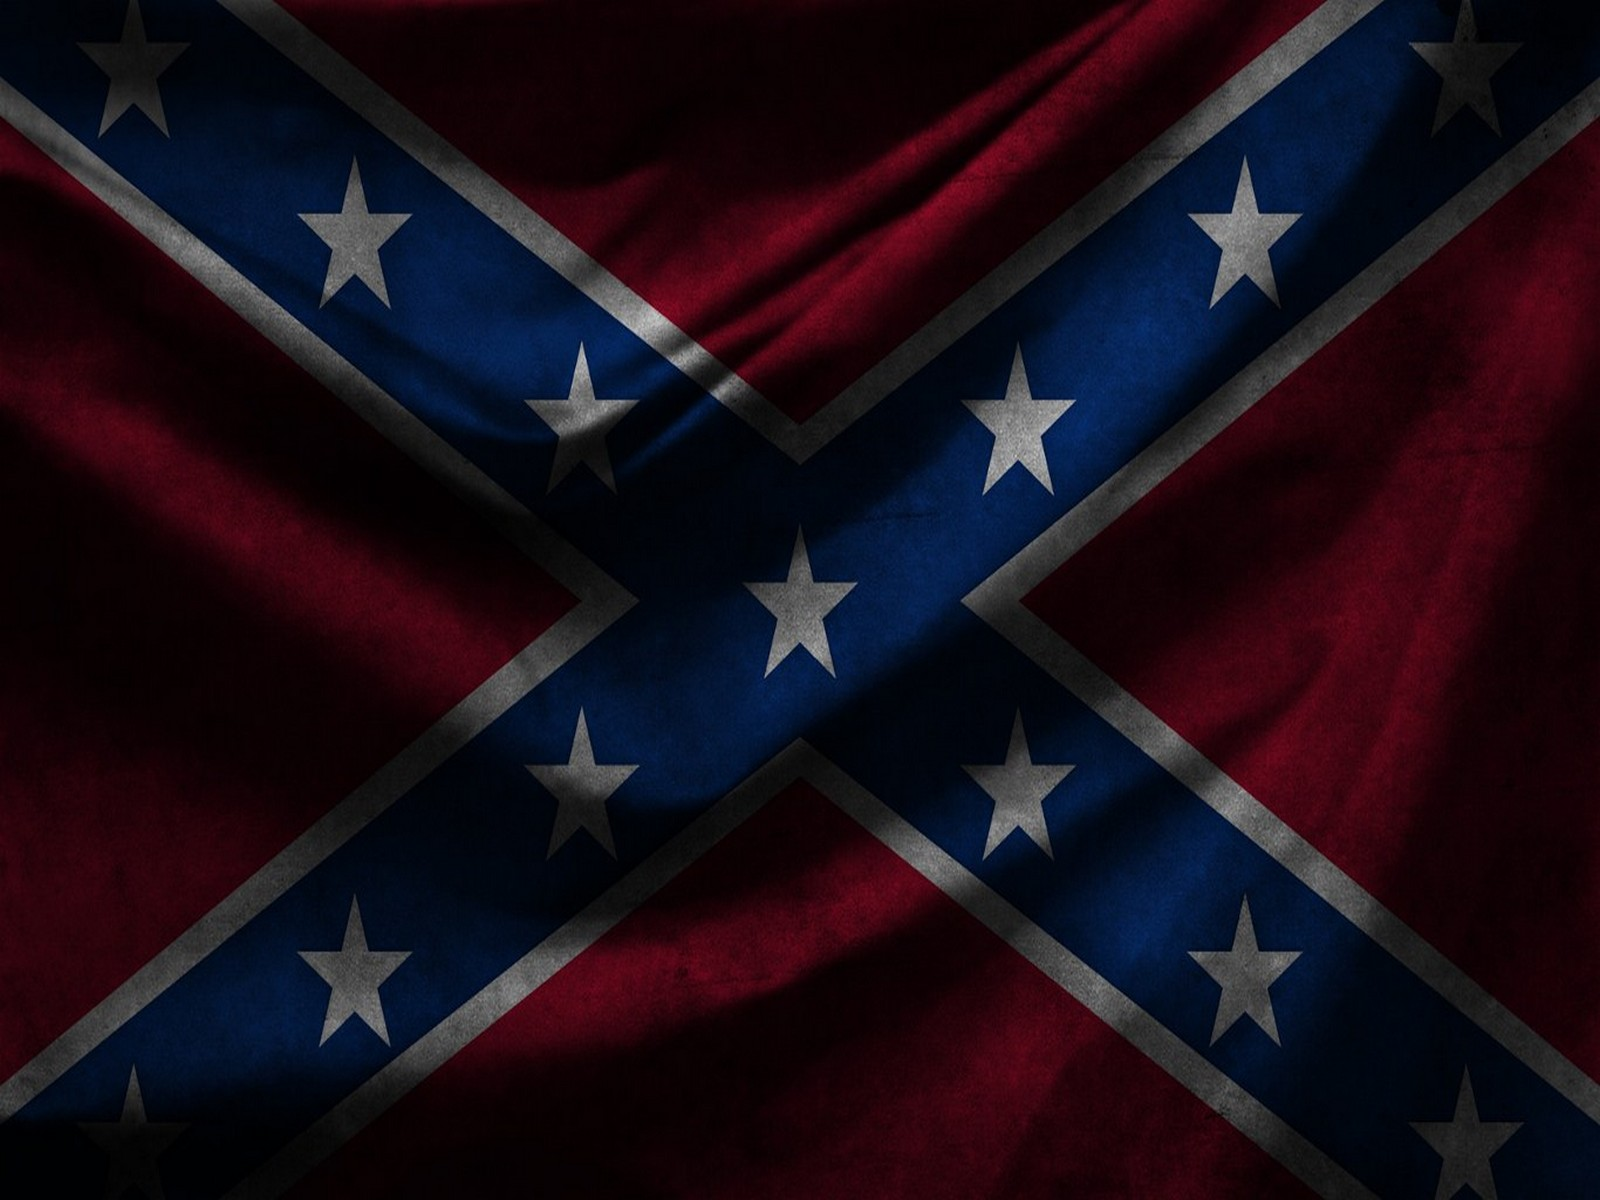 rebel flag computer wallpaper MEMEs 1600x1200